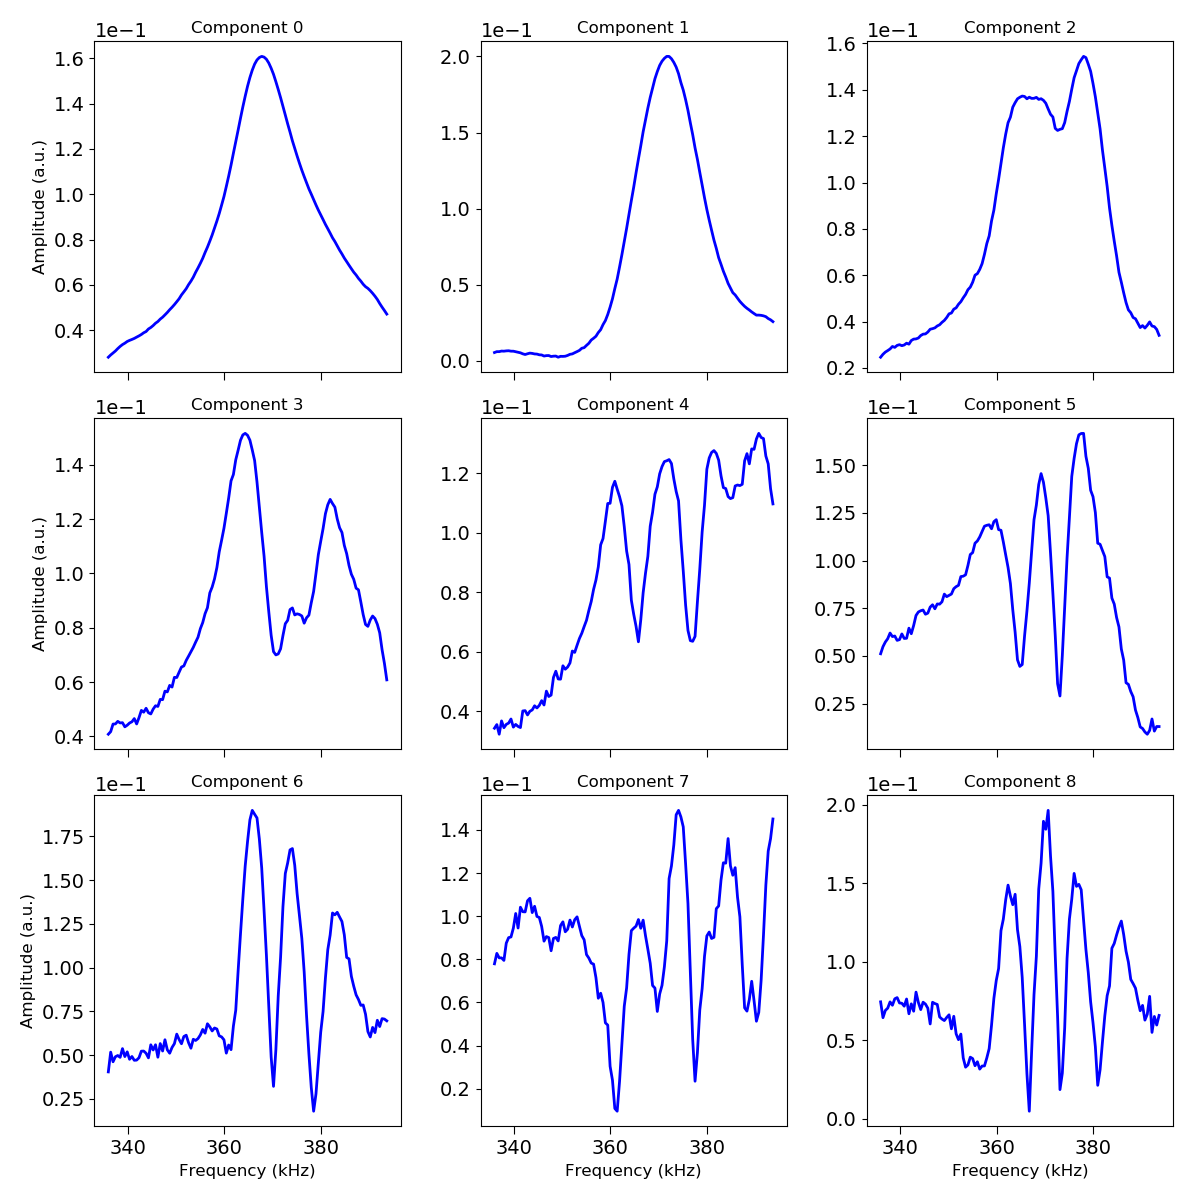 docs/auto_examples/images/sphx_glr_plot_spectral_unmixing_003.png